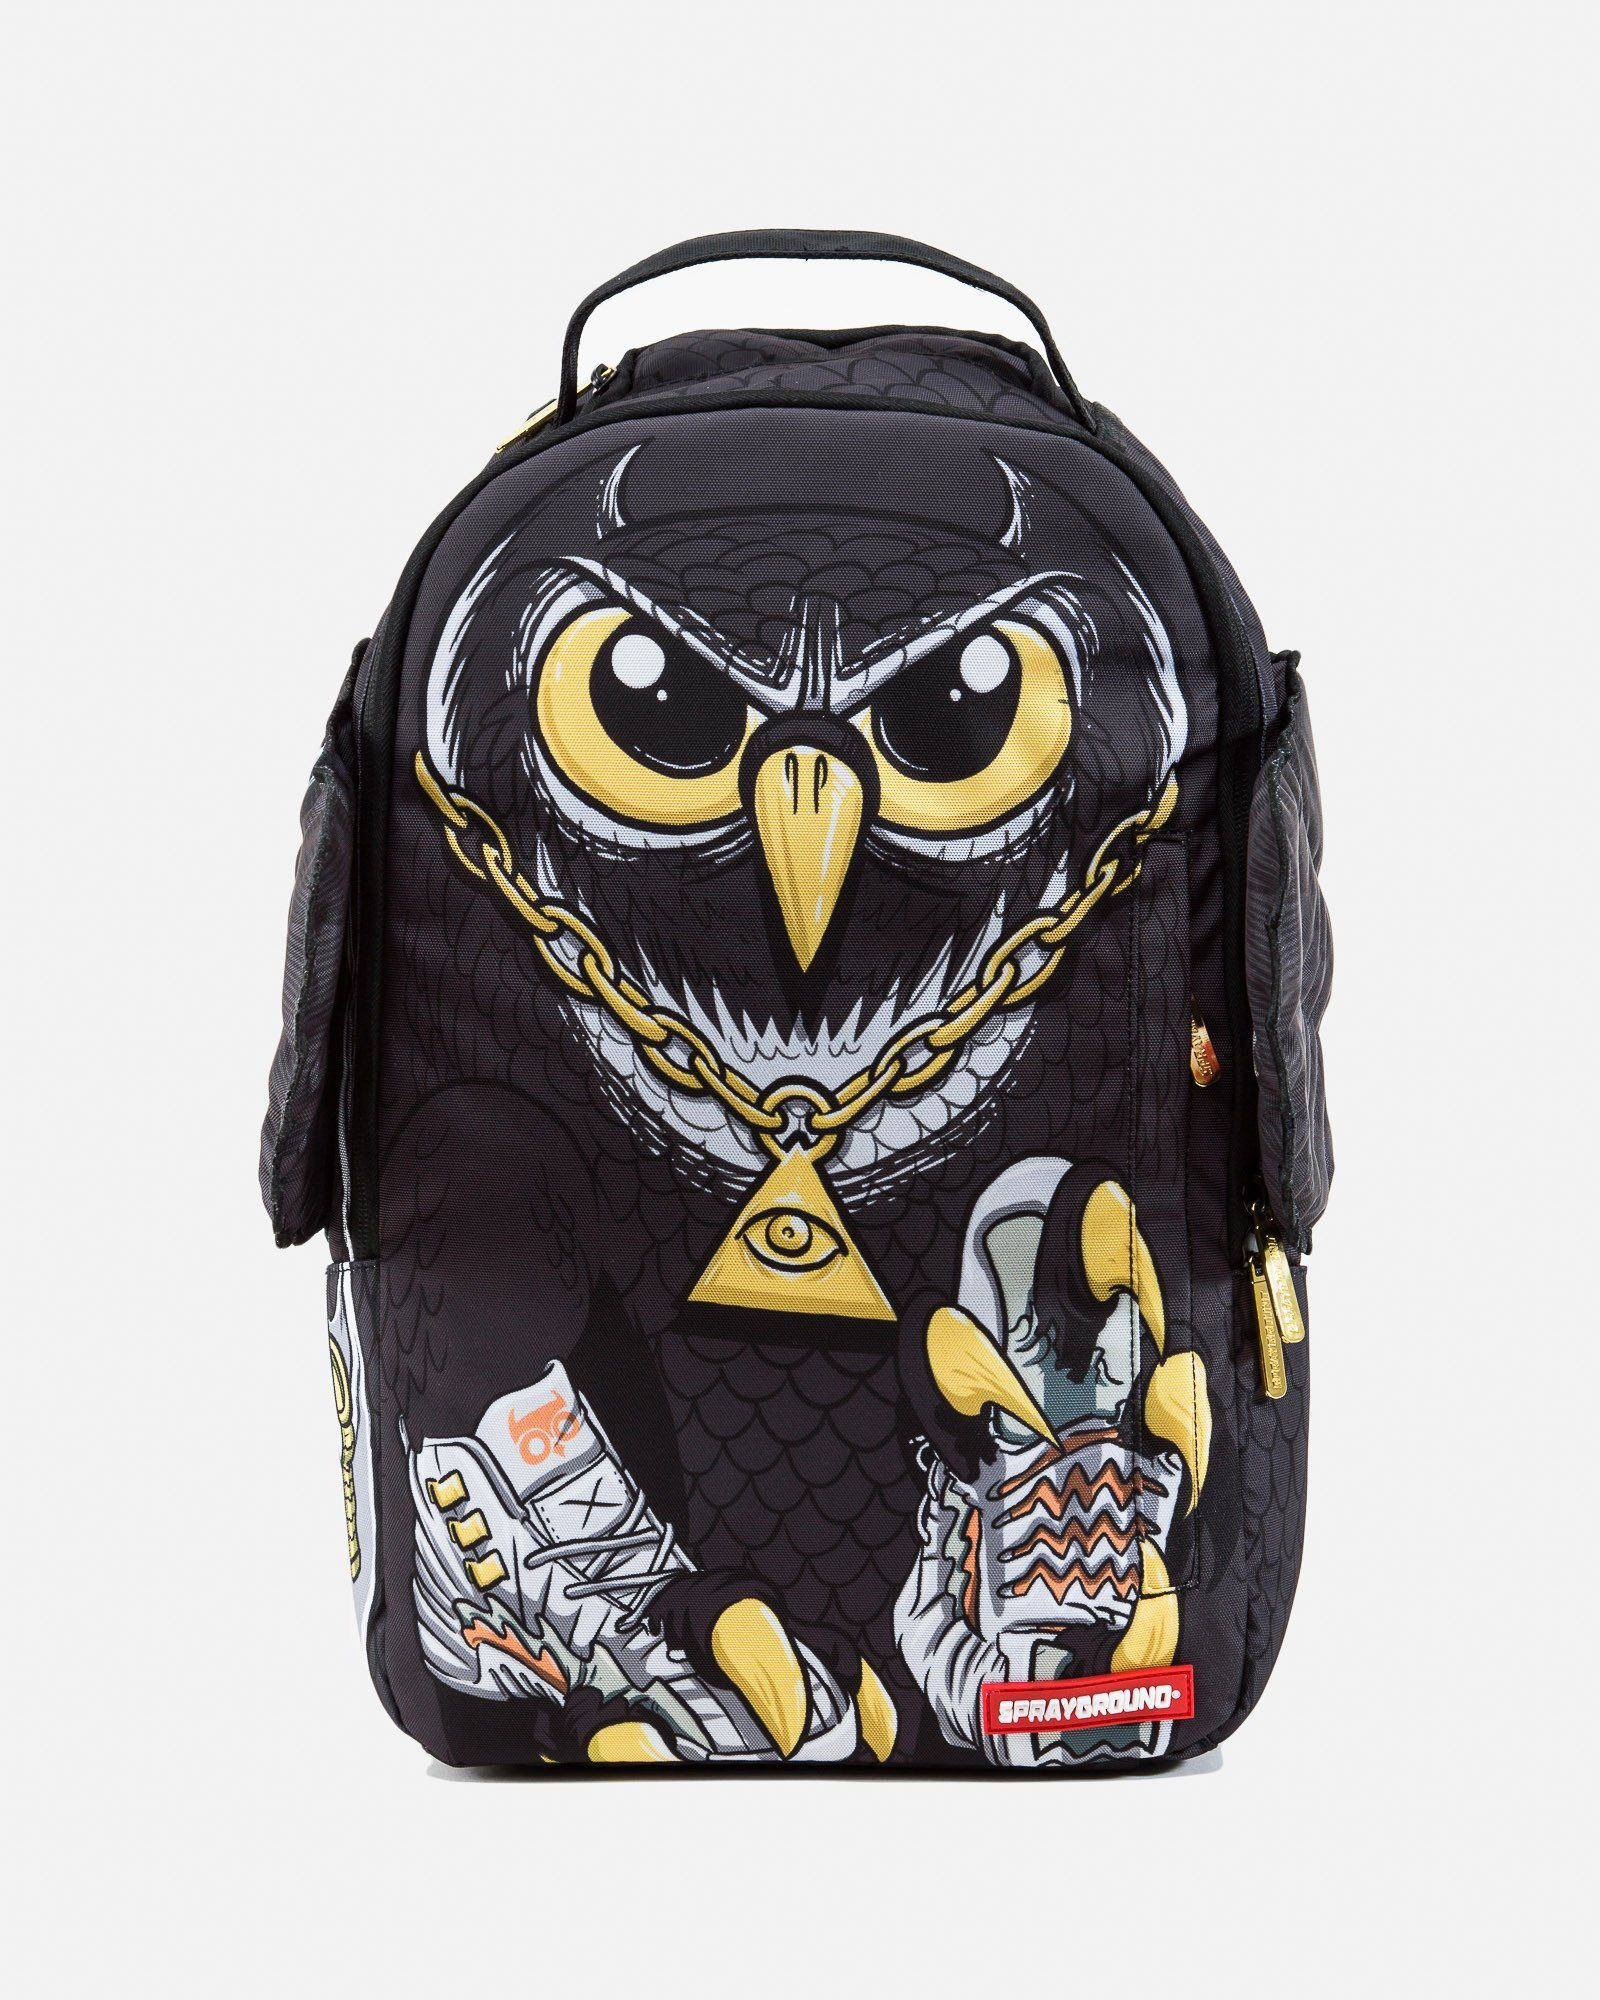 74b3e61096ef7 Owl Wings Bag Backpak | Sprayground in 2019 | Bags, Backpack bags ...